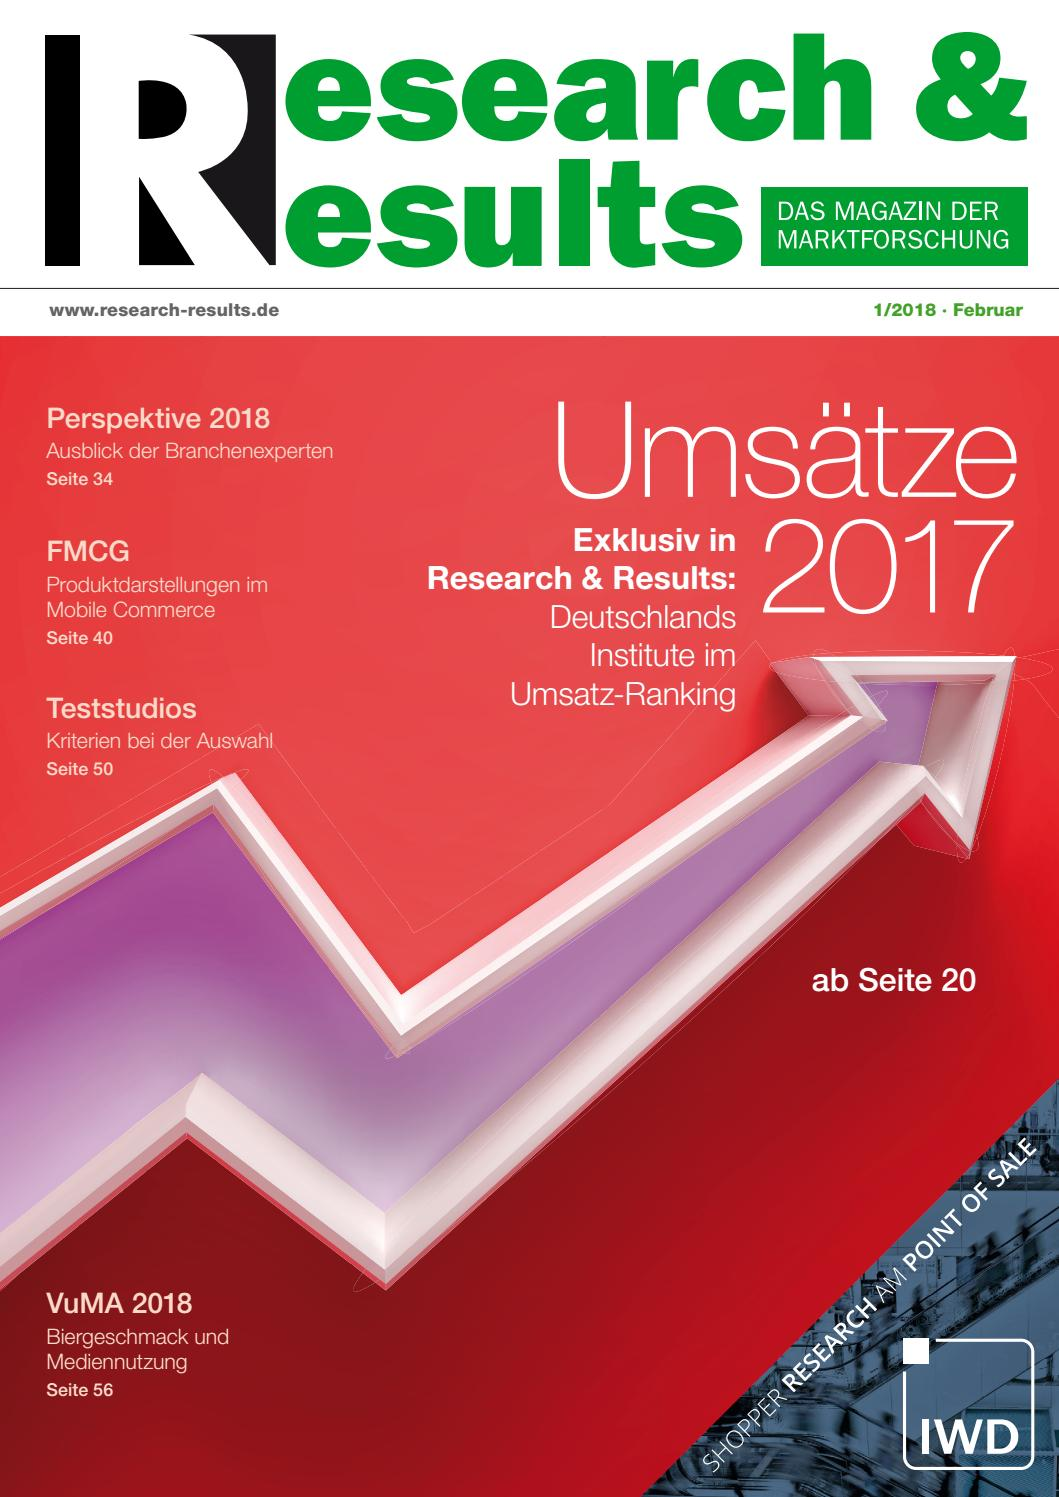 Research & Results 01/2018 by Research & Results - issuu